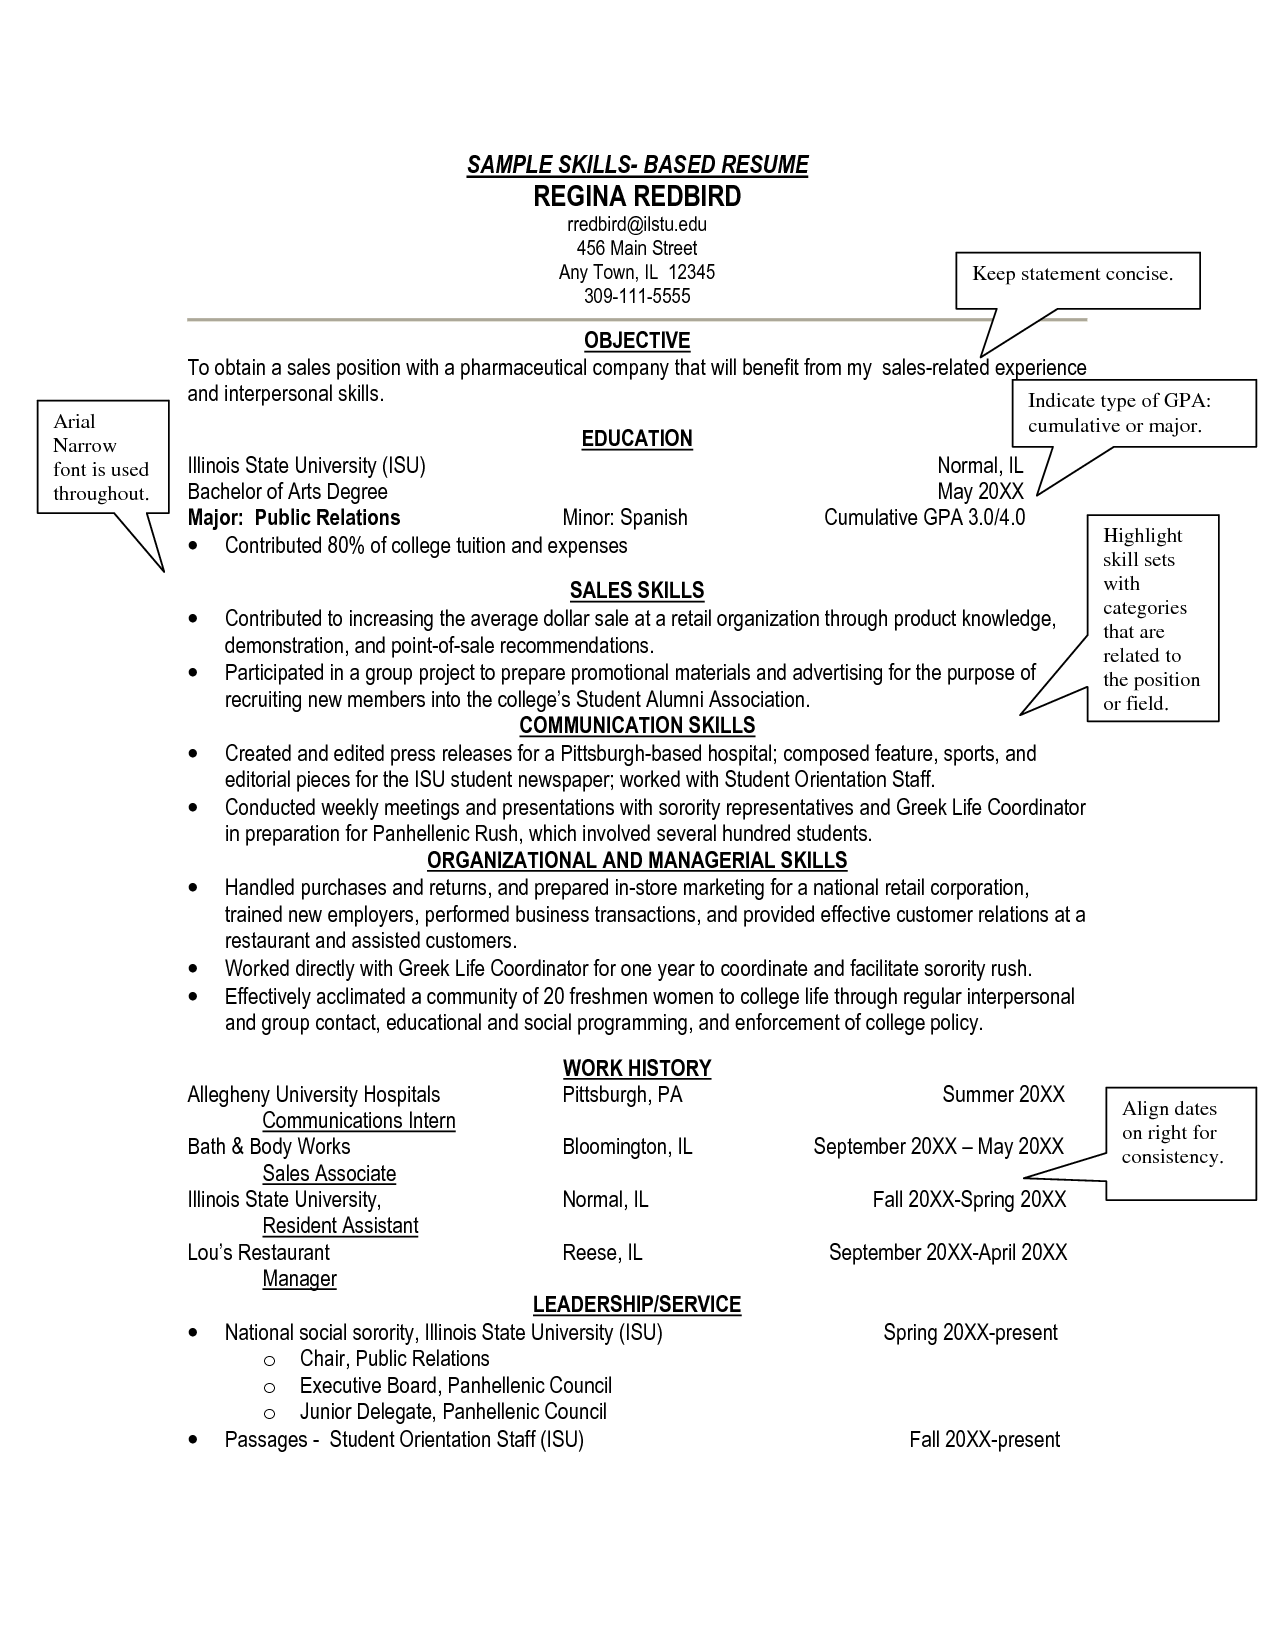 Skills Section Resume Example Sample Skills Resume Template  Interview  Pinterest  Sample .